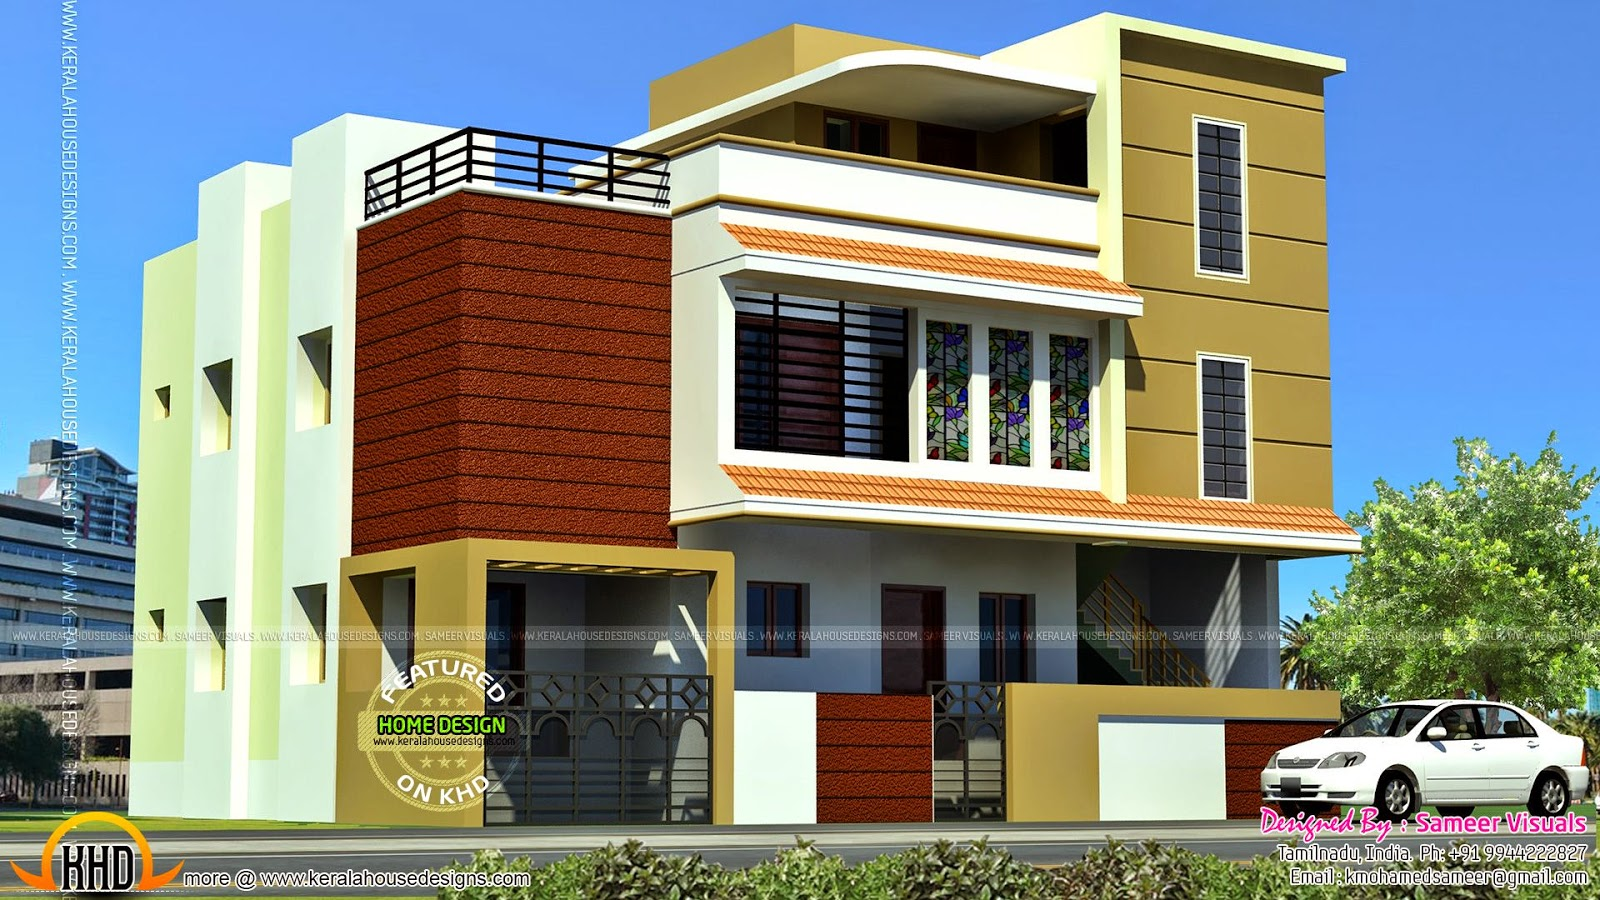 Tamilnadu model house kerala home design and floor plans for Tamilnadu home design photos